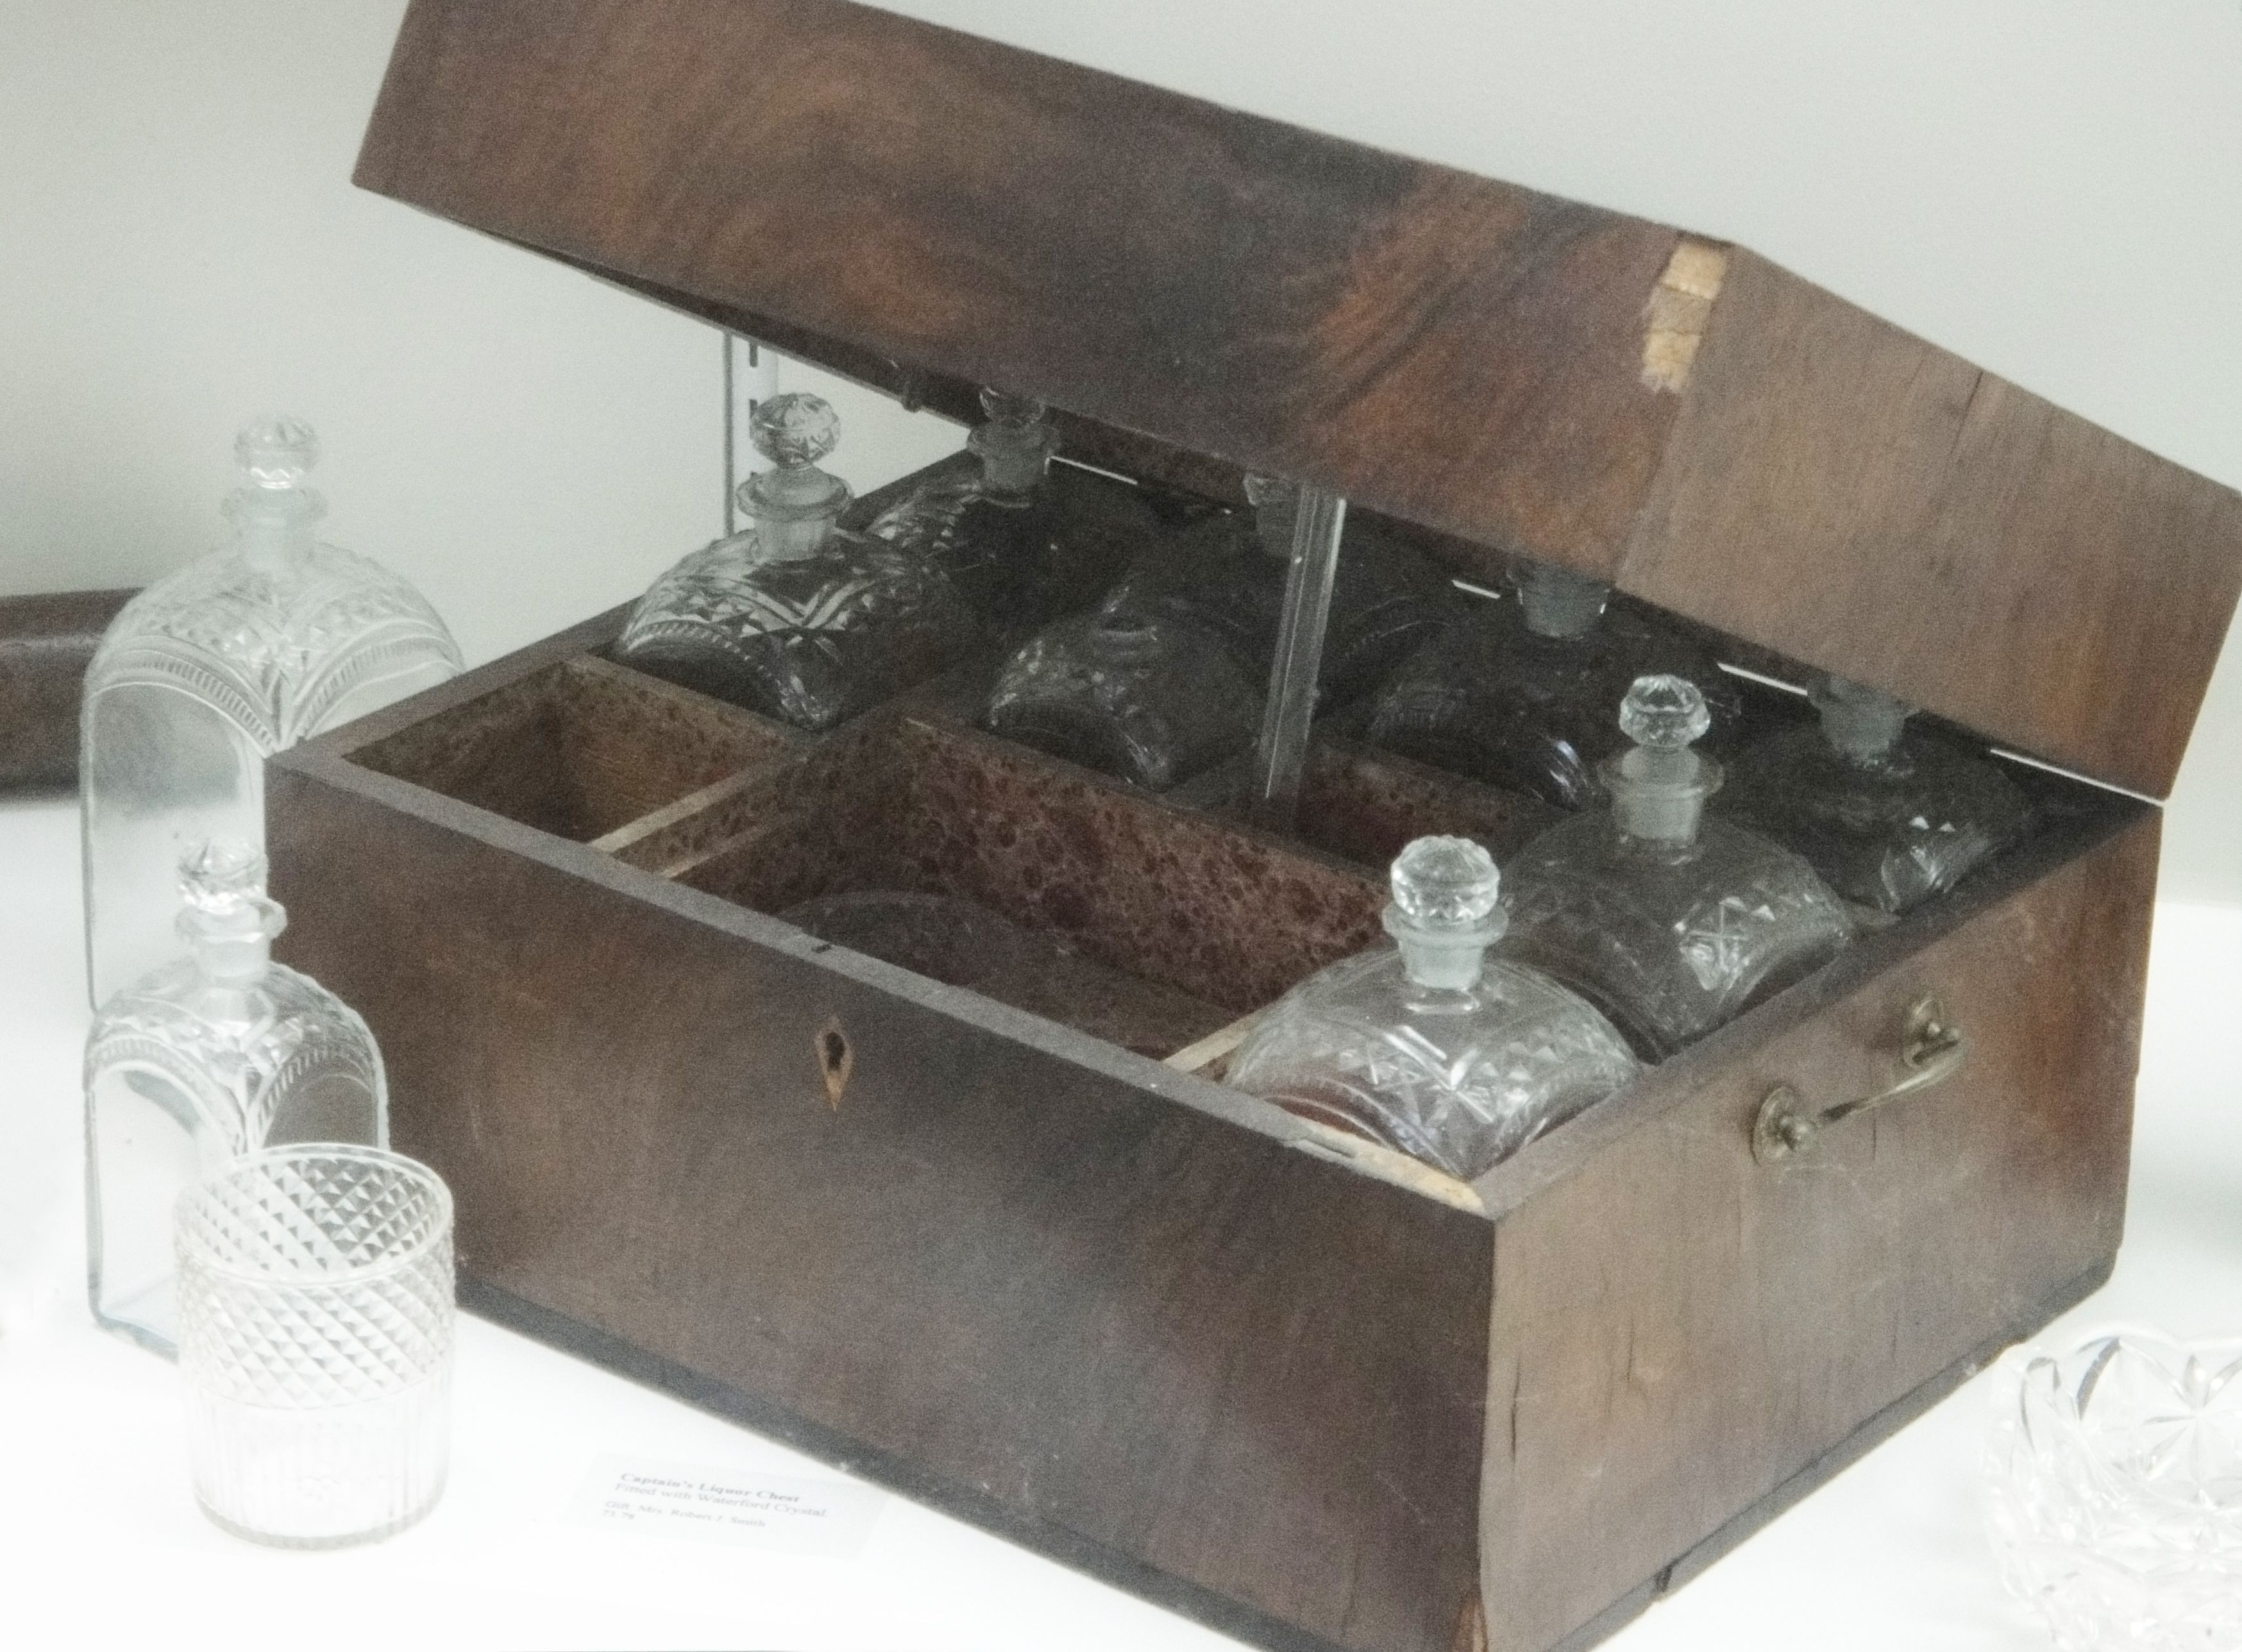 a handsome liquor chest with beautifully crafted waterford crystal